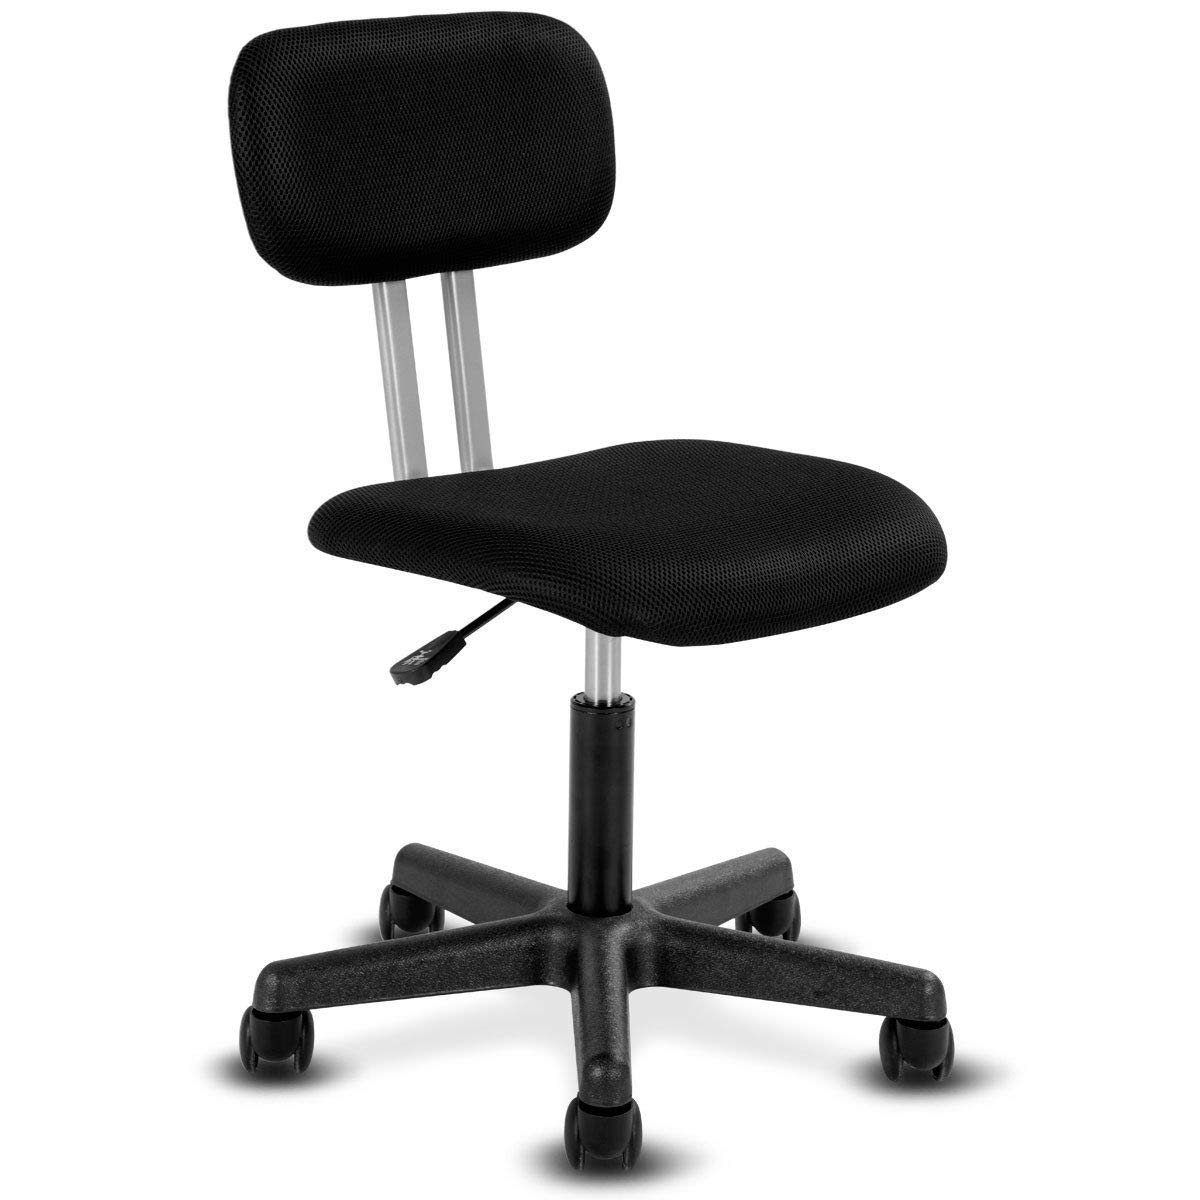 Giantex Armless Mid-Back Mesh Office, Computer Desk Swivel Height Adjustable Chair Student Ergonomic Modern Chair with Breathable Cushion, Black Iron Support Back